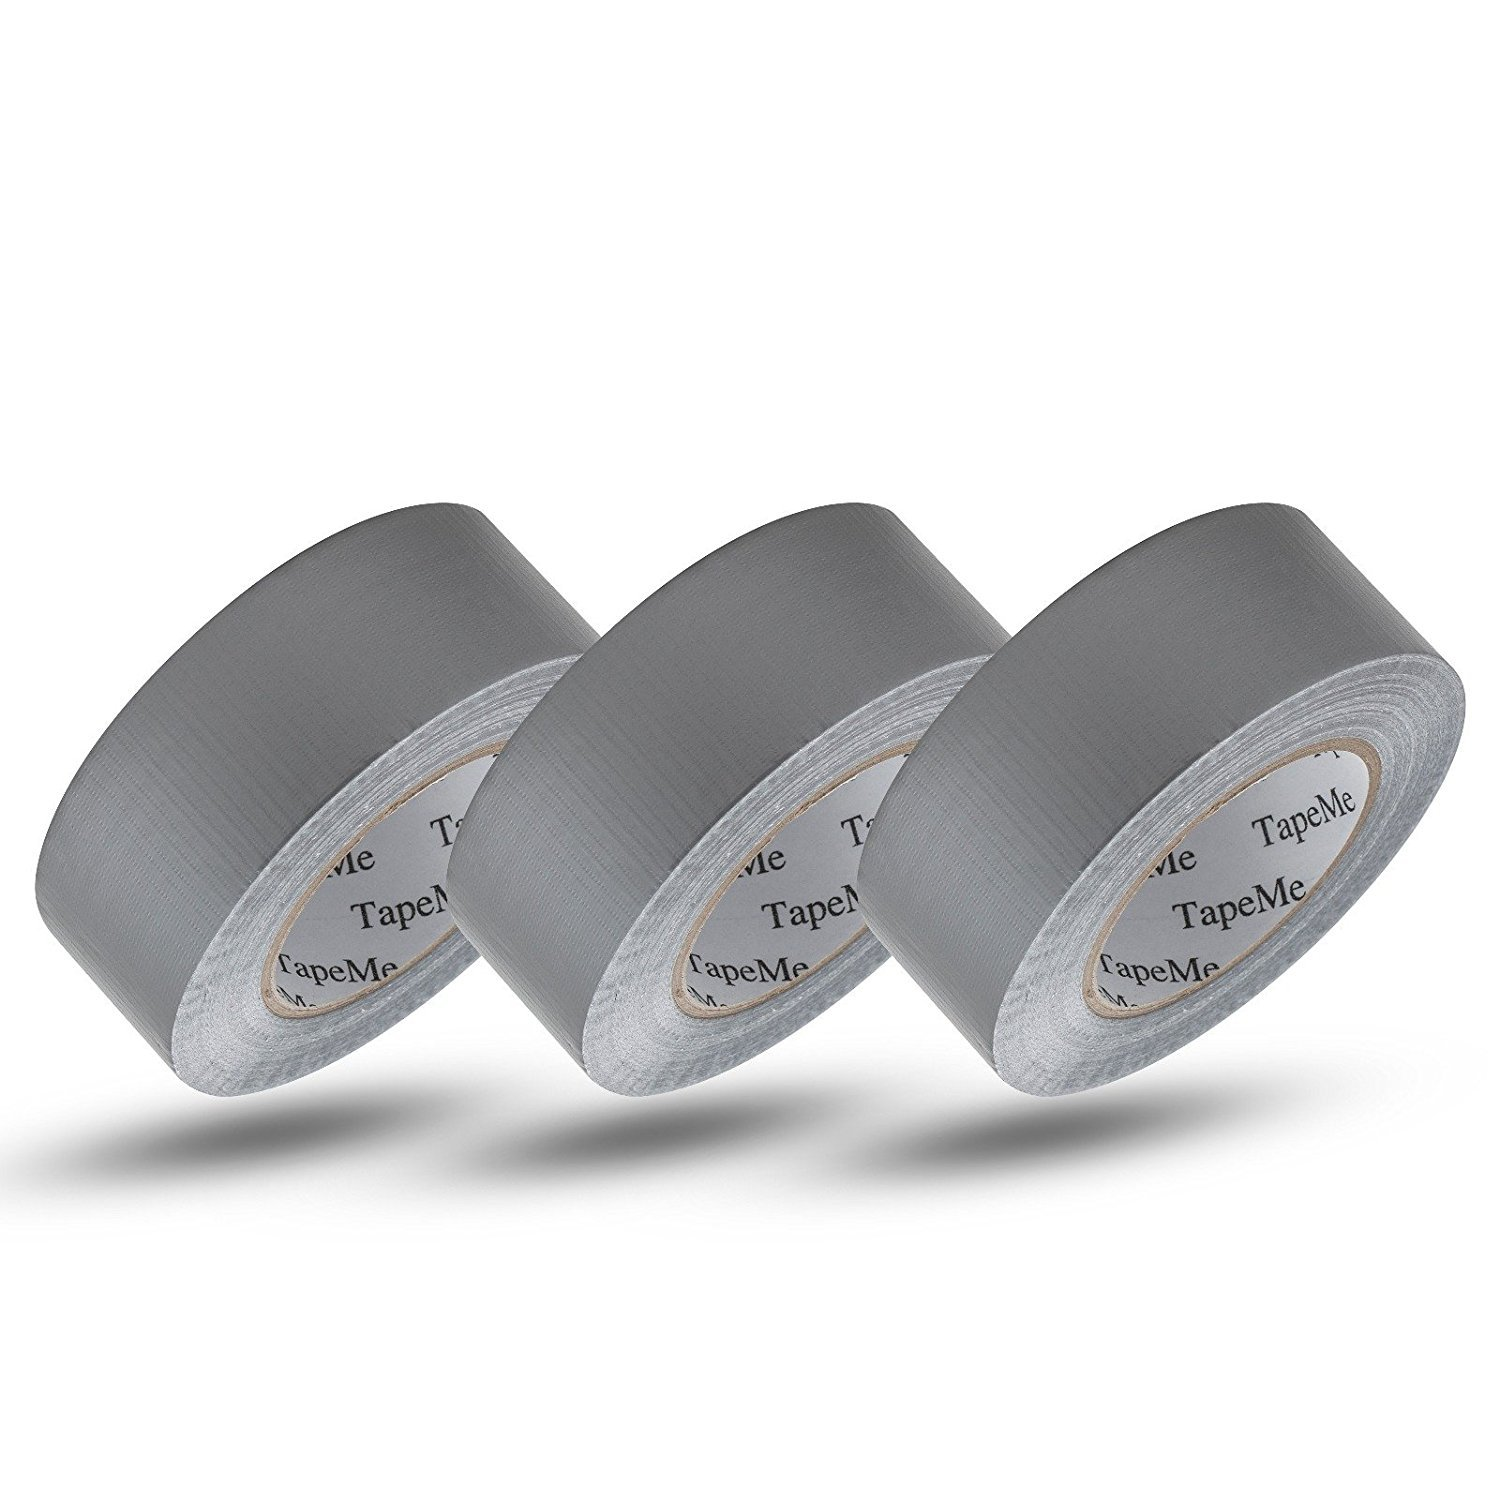 Tape-Me Duct Tape Silver, 1 88 in x 55 yd (Pack of 3)